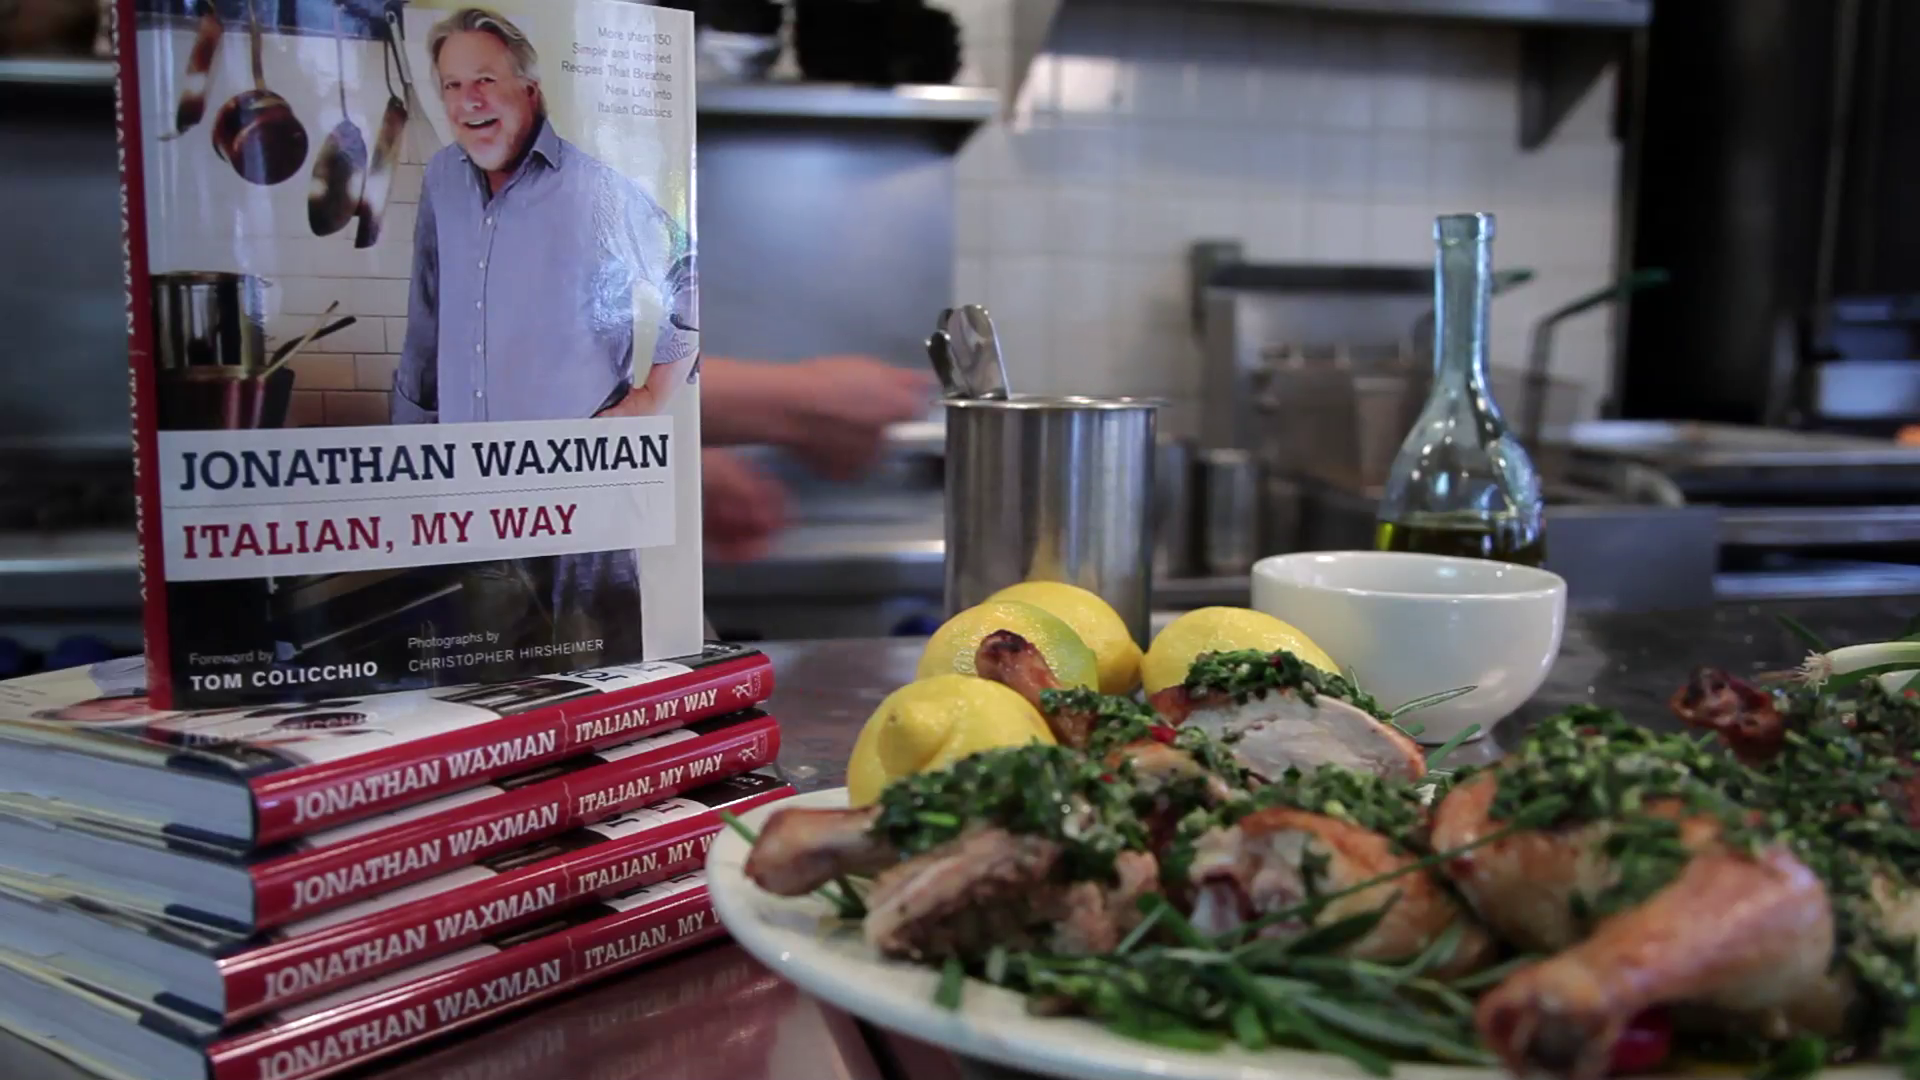 Top Chef Master, Jonathan Waxman Shares Italian, My Way